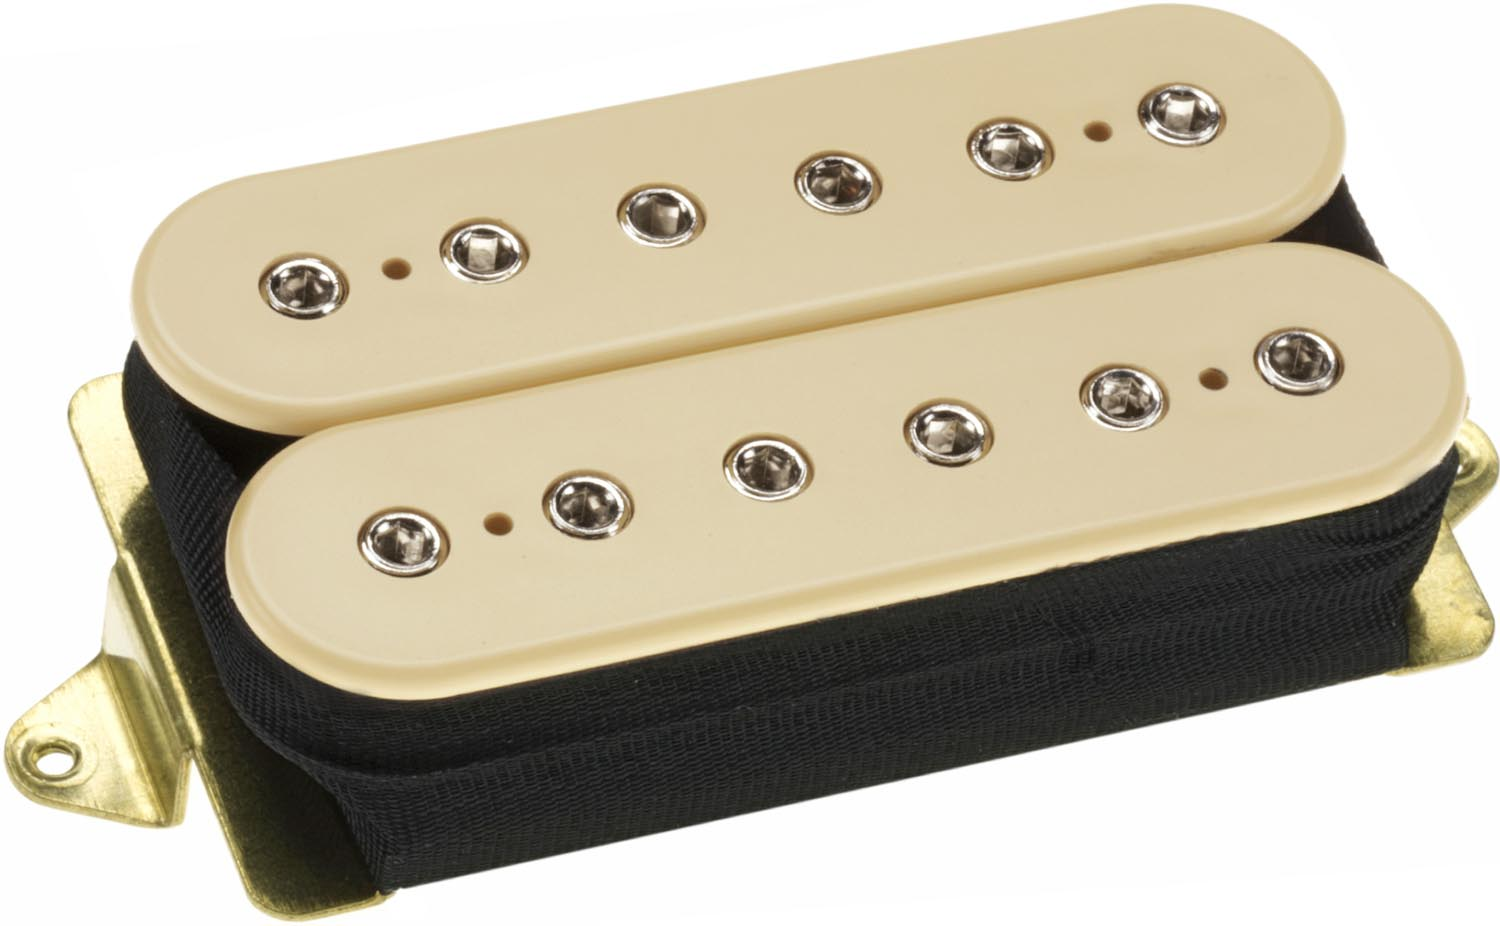 DiMarzio DP100 Super Distortion High Output Humbucker Bridge Pickup, Cream, NEW!